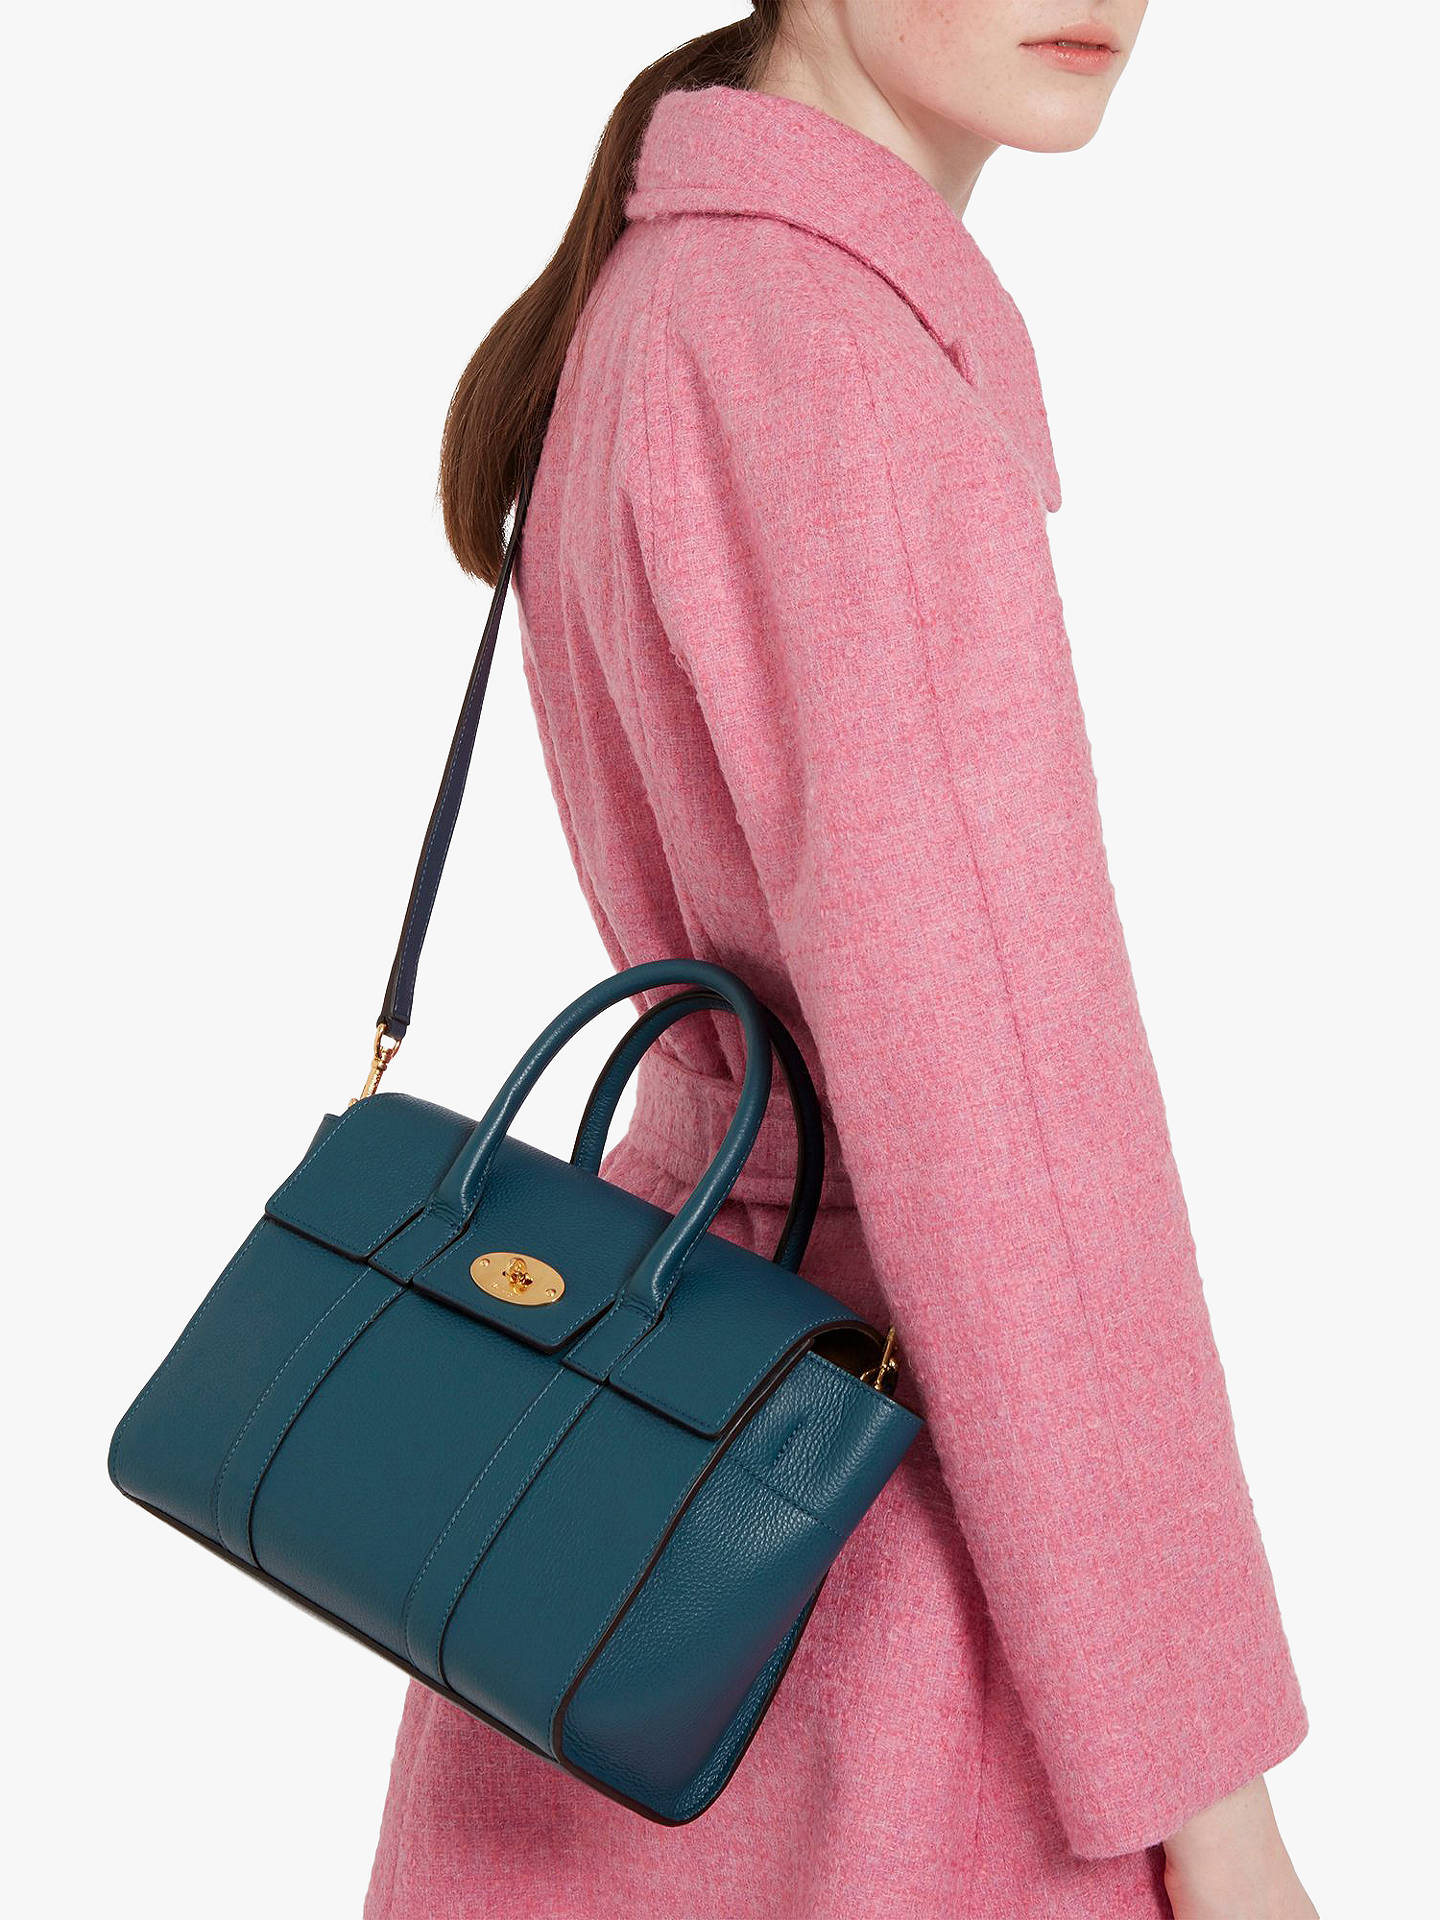 Mulberry Small Bayswater Small Classic Grain Leather Satchel Bag at ... 8f1a9970a5f36